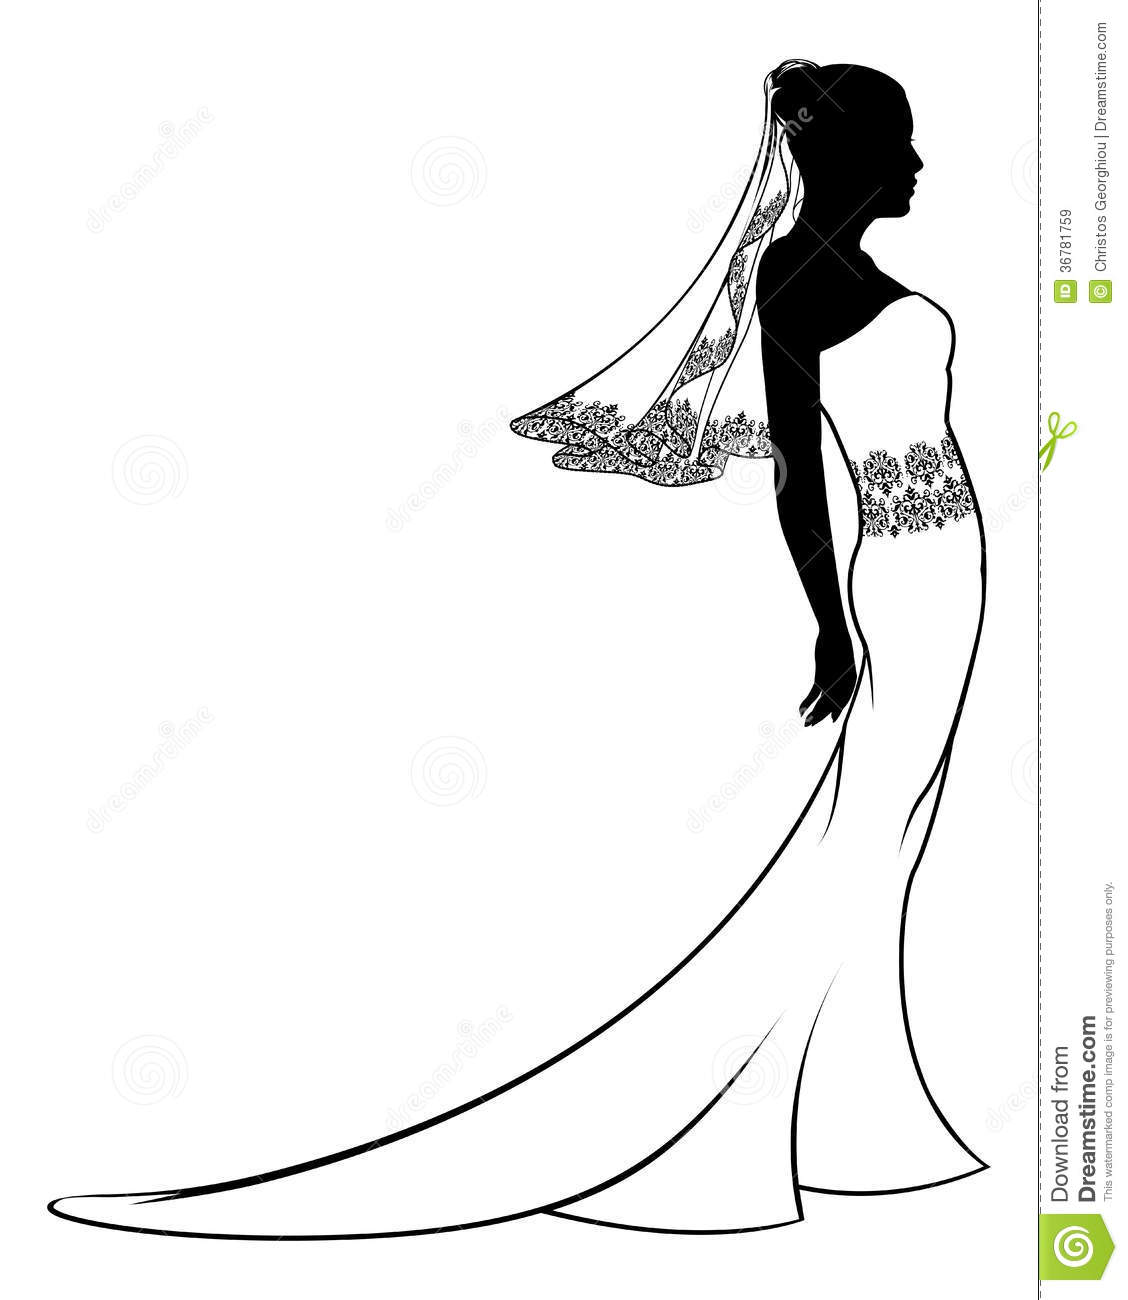 Greek Fashion Sketch 215300927 moreover Kak Narisovat Plate Karandashom furthermore Anime Hair 395710296 in addition Thing besides A Study In Shirts 472762884. on drawings of dresses